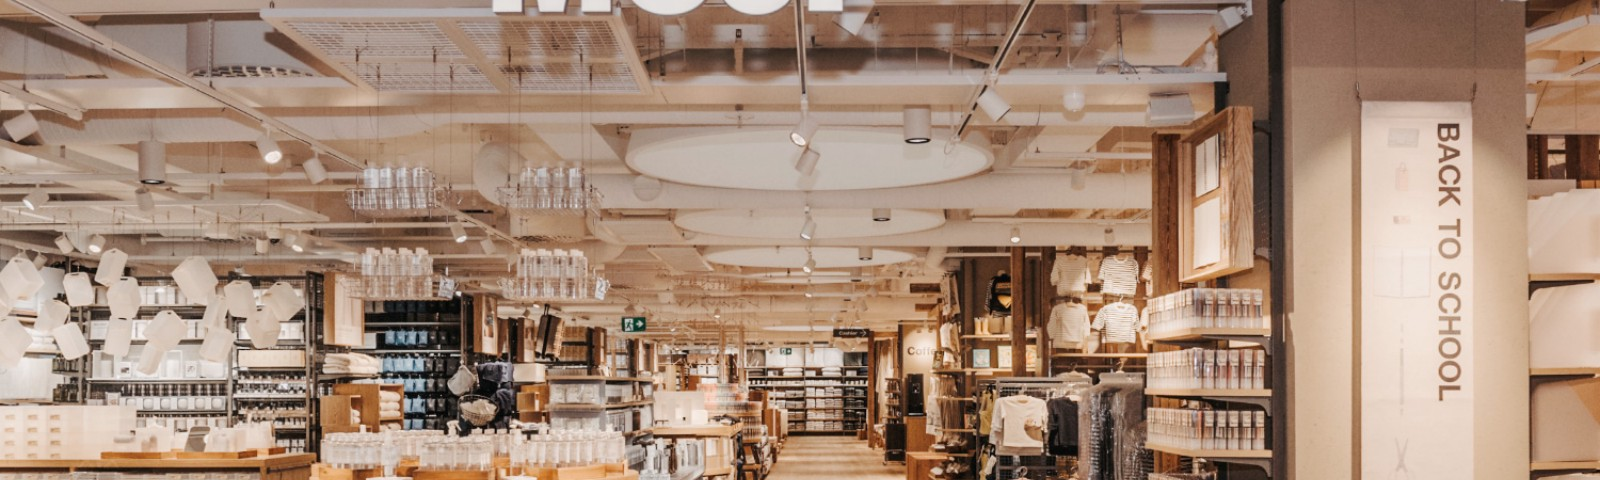 Image of a Muji store from the outside.